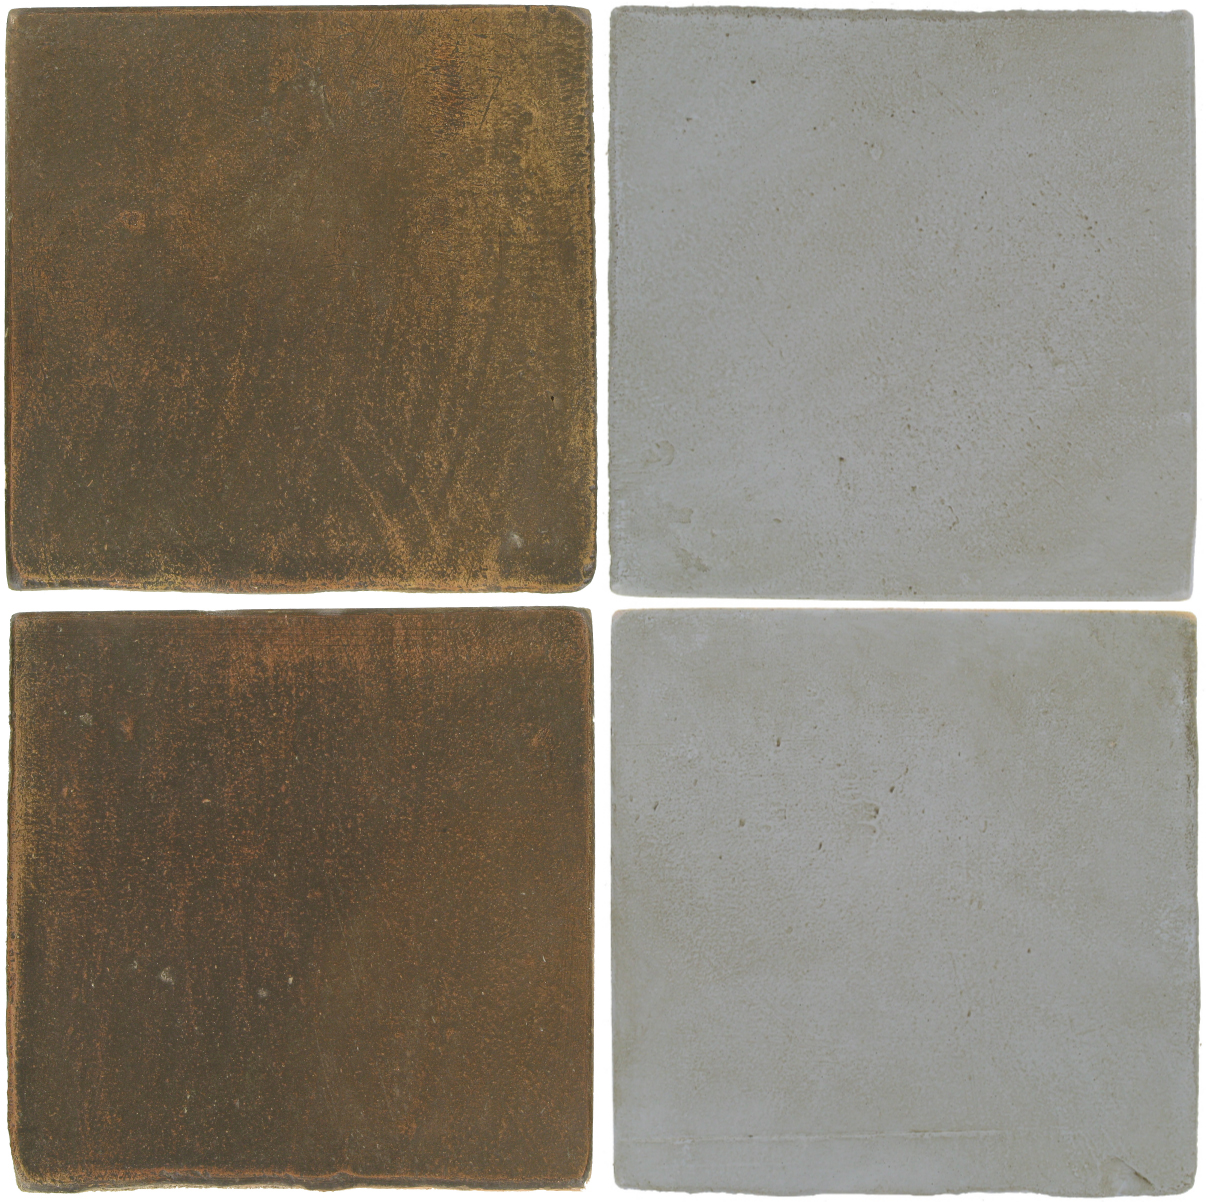 Pedralbes Antique Terracotta  2 Color Combinations  OHS-PSVN Verona Brown + OHS-PGOG Oyster Grey